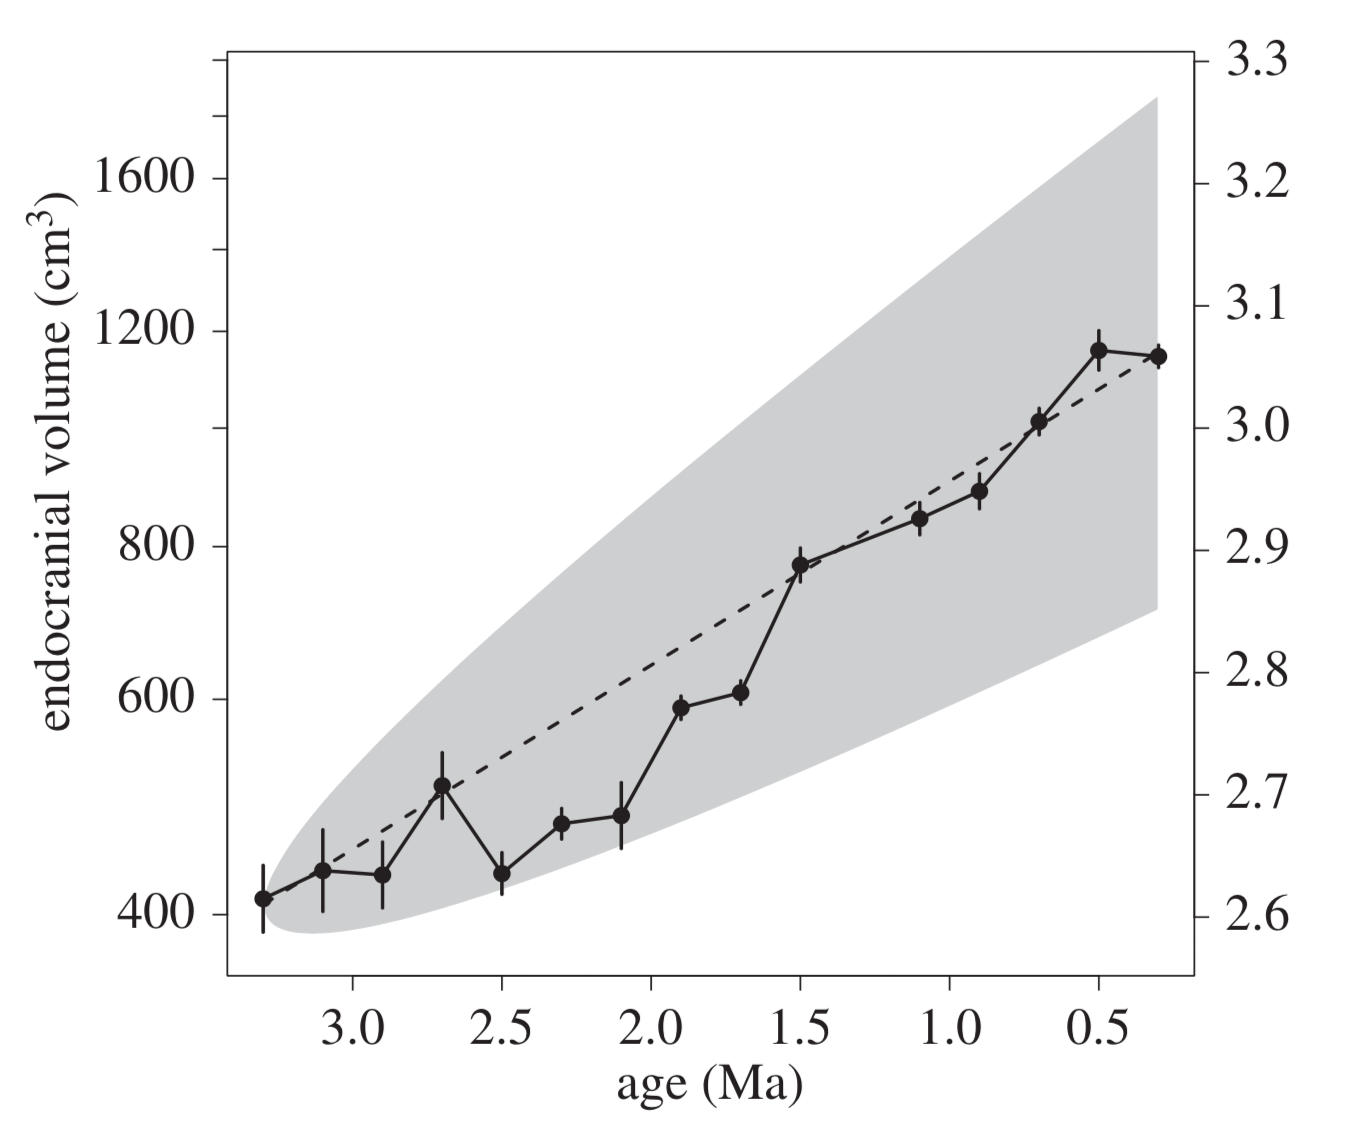 Figure 3b from Du and colleagues showing the data fitting a gradual model of brain size increase over time